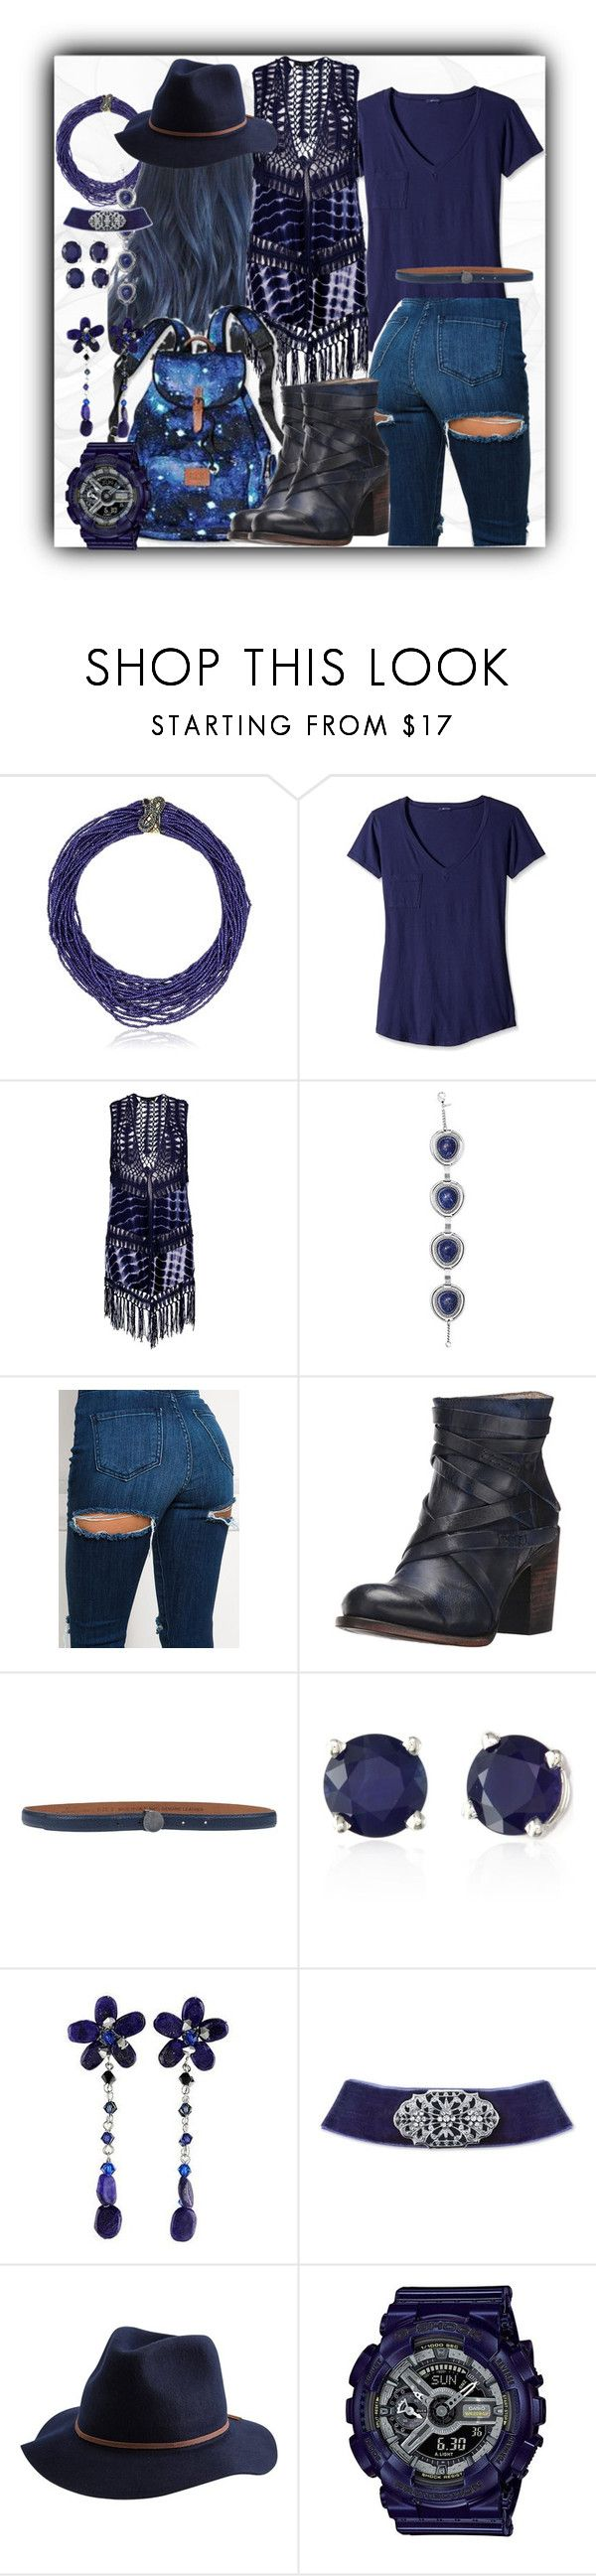 """fav blue boots, meet outfit"" by caroline-buster-brown ❤ liked on Polyvore featuring Betsey Johnson, LAmade, Boohoo, Victoria's Secret, Avon, Steven by Steve Madden, Golden Goose, Effy Jewelry, NOVICA and 2028"